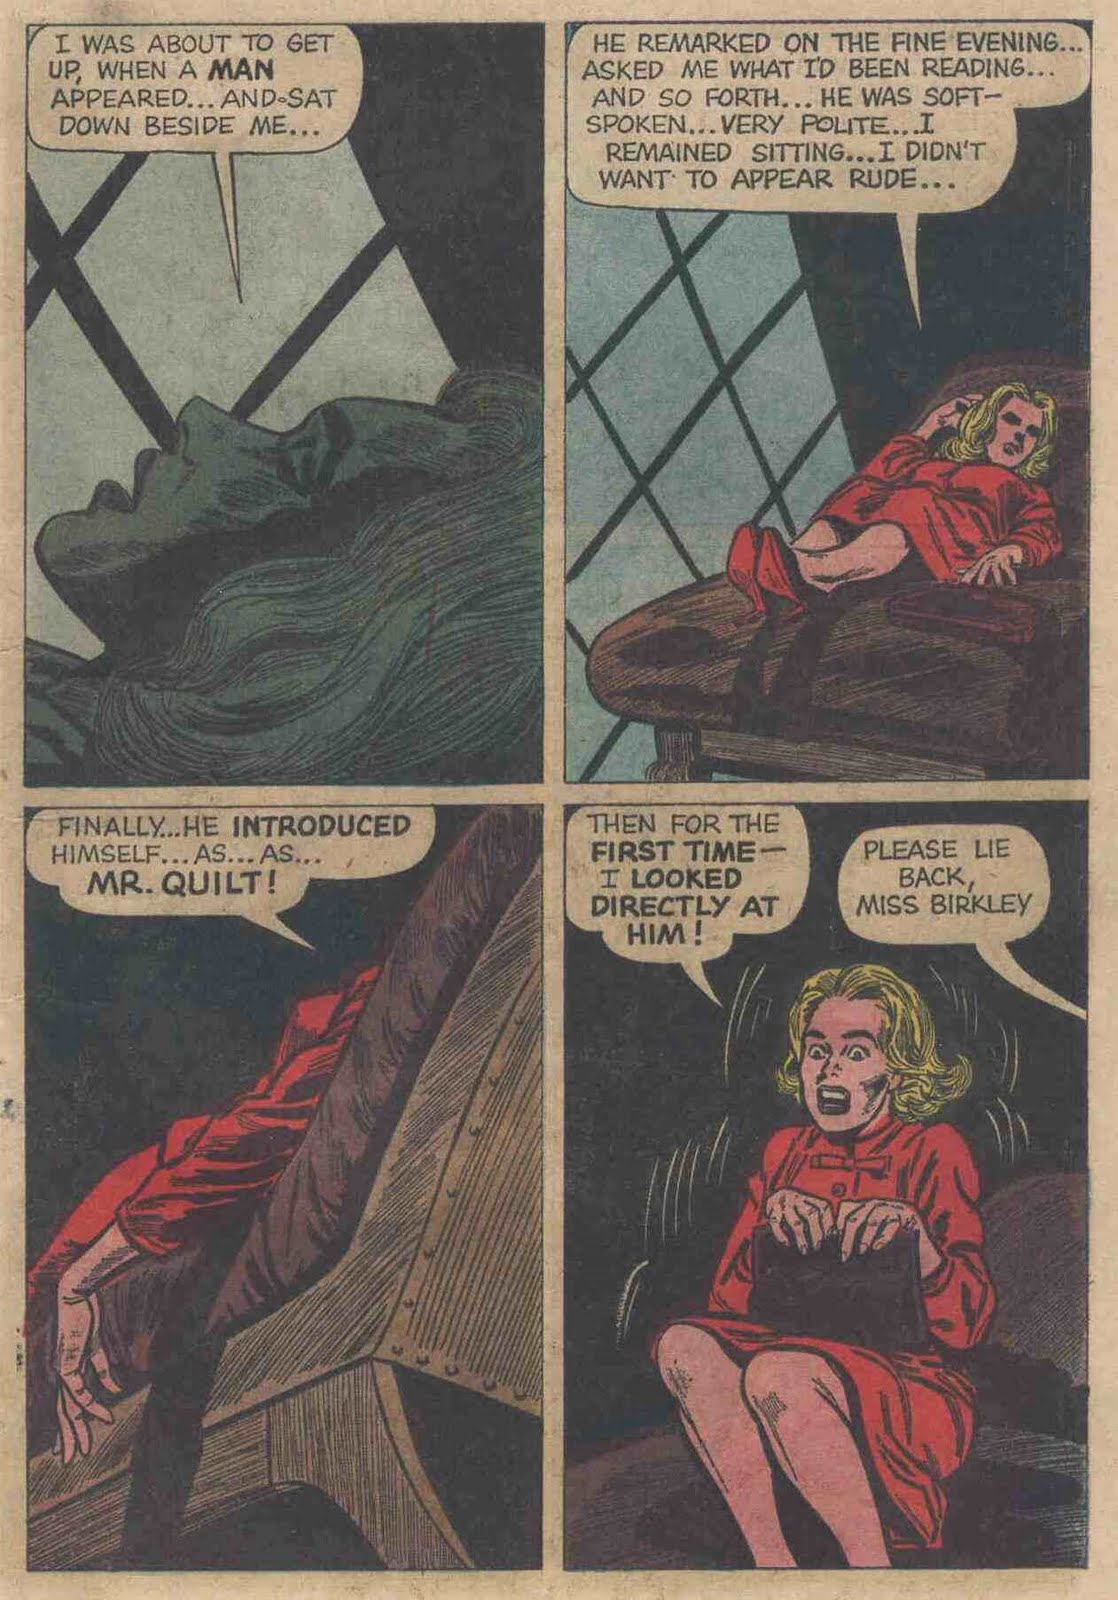 Tales-from-the-Tomb-1-Crazy-Quilt-p-2.jpg